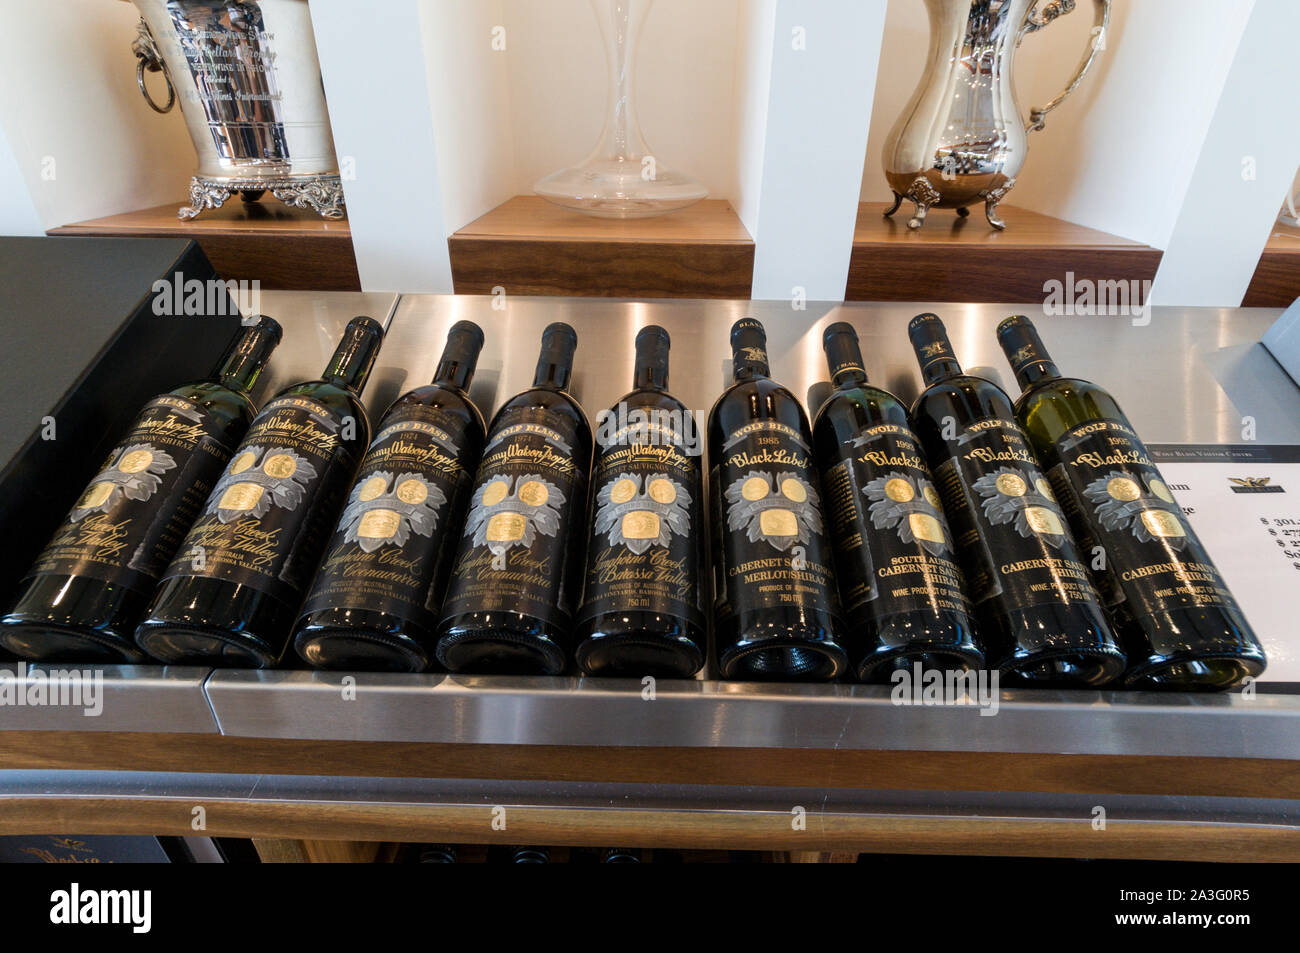 A row of prestige wines from 1973 to 1995 on sale at the Wolf Blass winery visitors centre in the Barossa Valley wine region in South Australia.   The Stock Photo